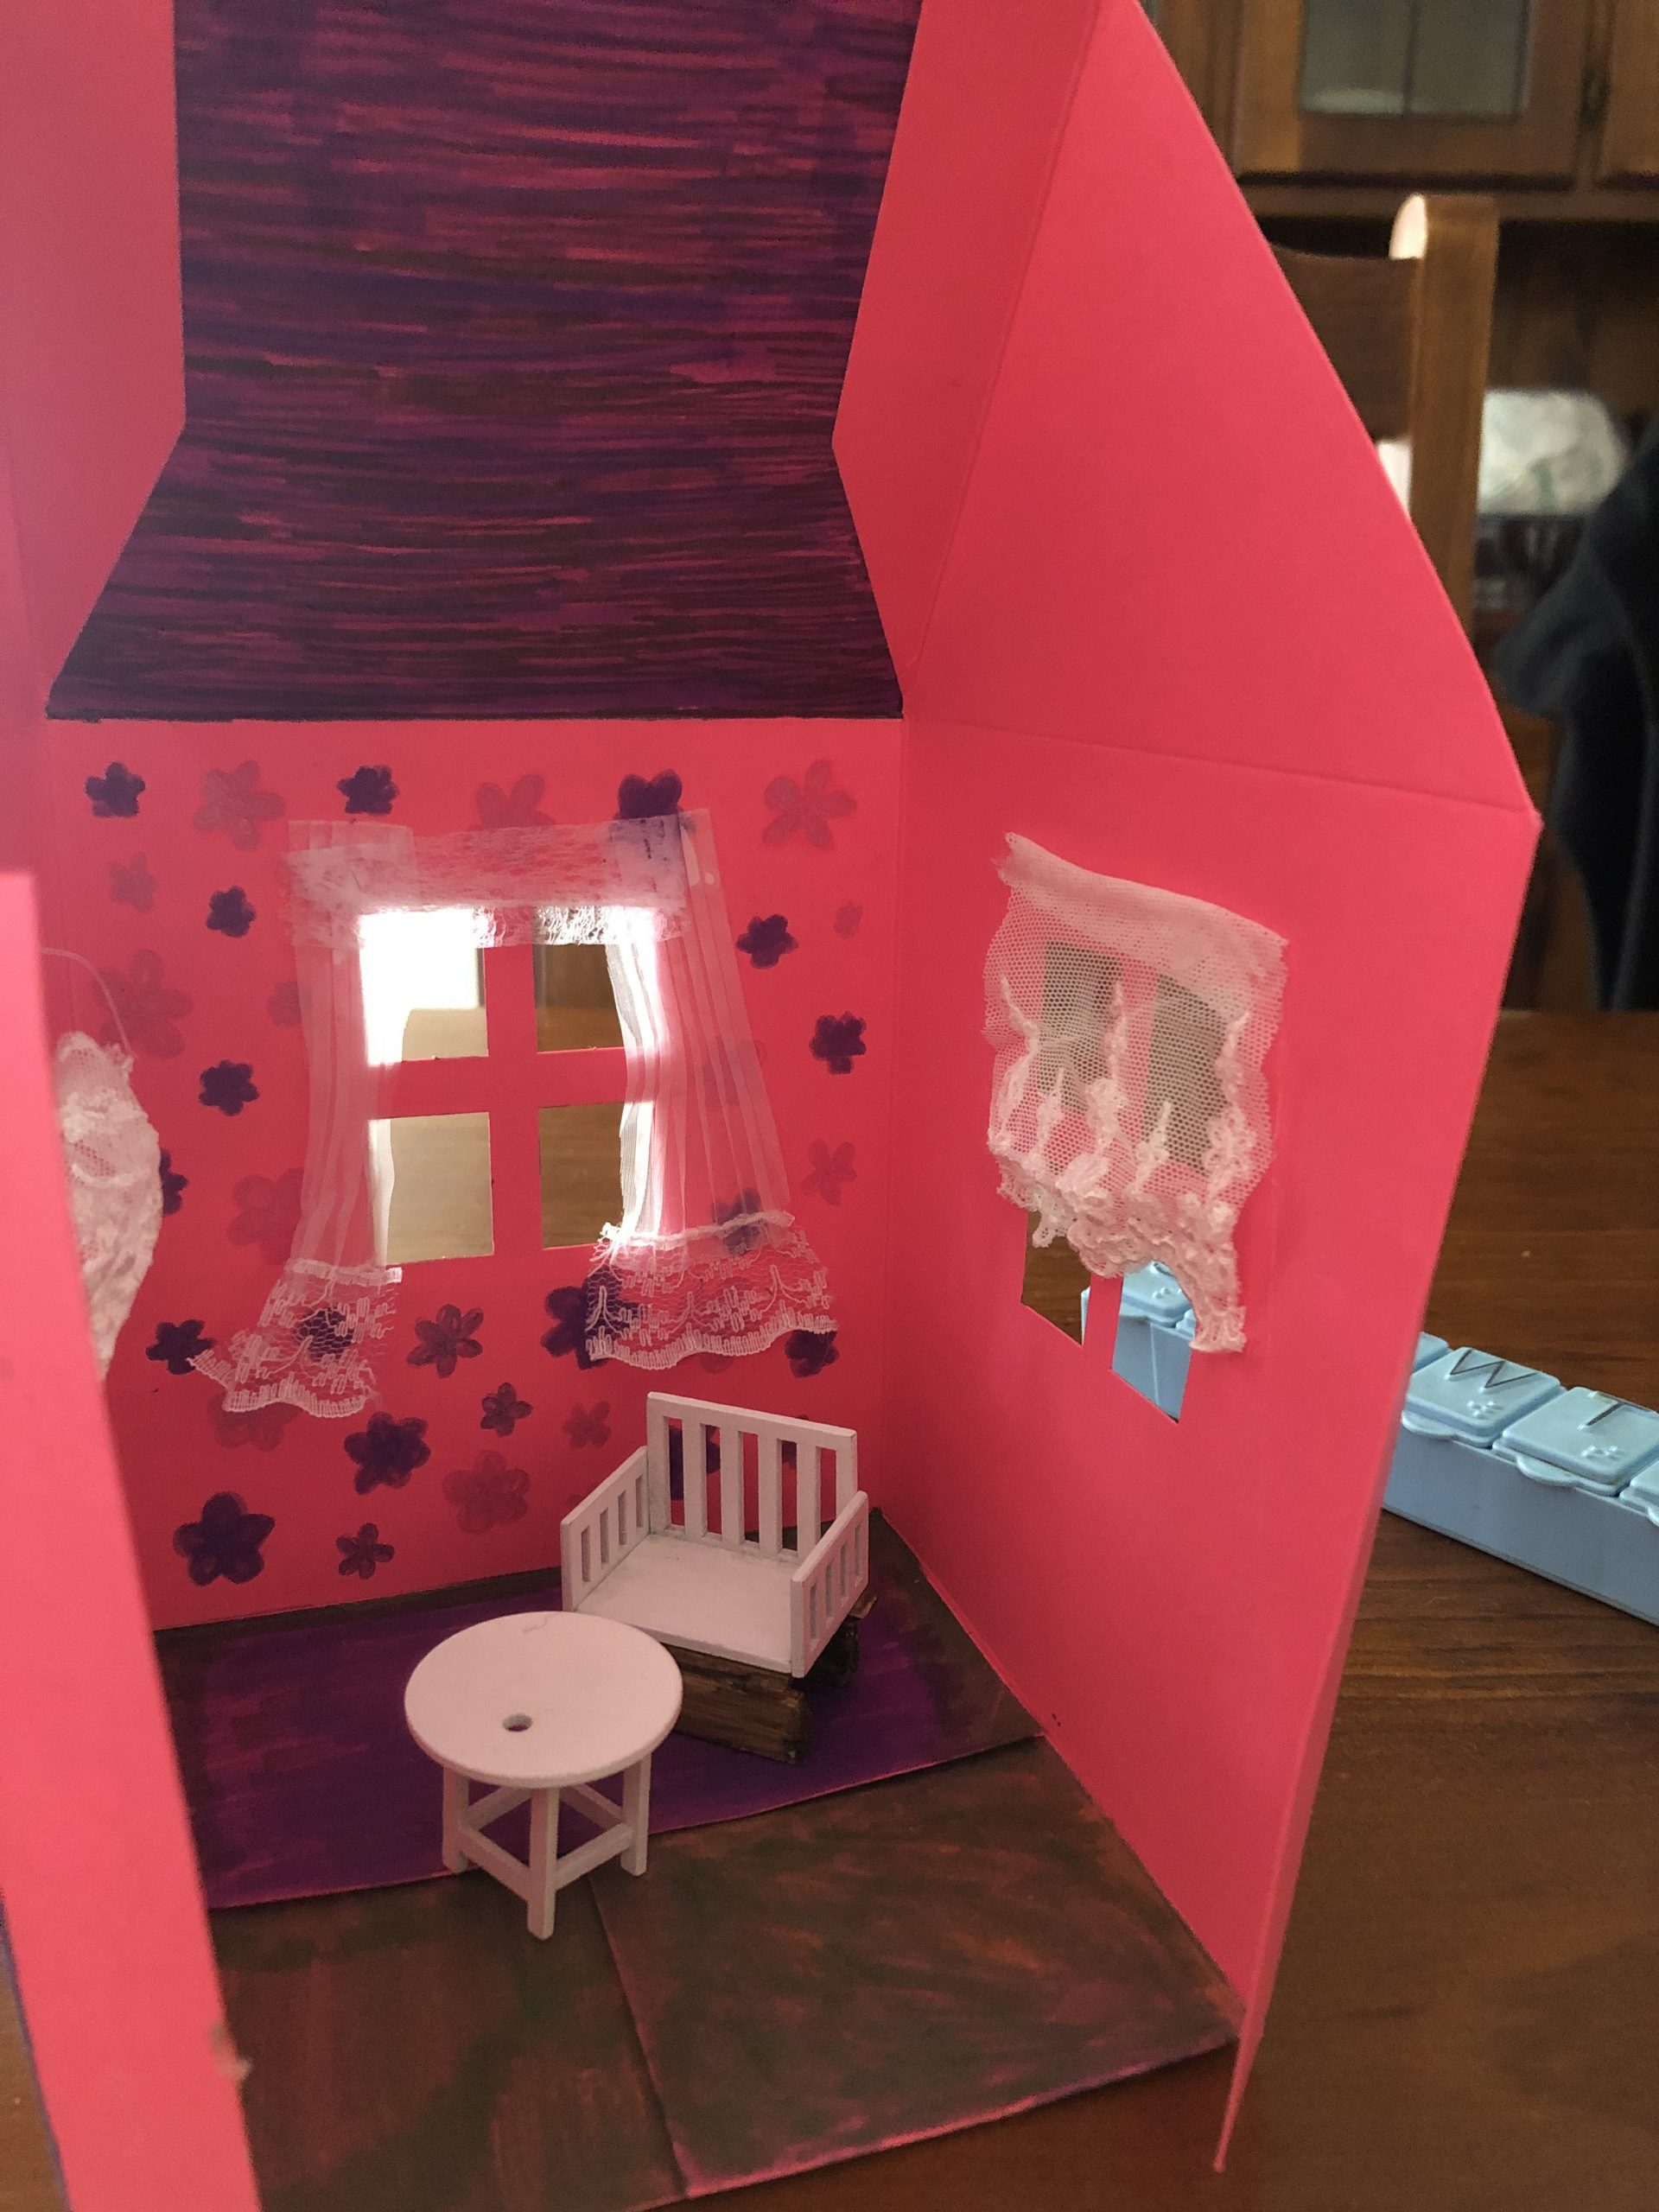 A red warm safe home interior with a chair and table and curtains at the window and decorative walls.